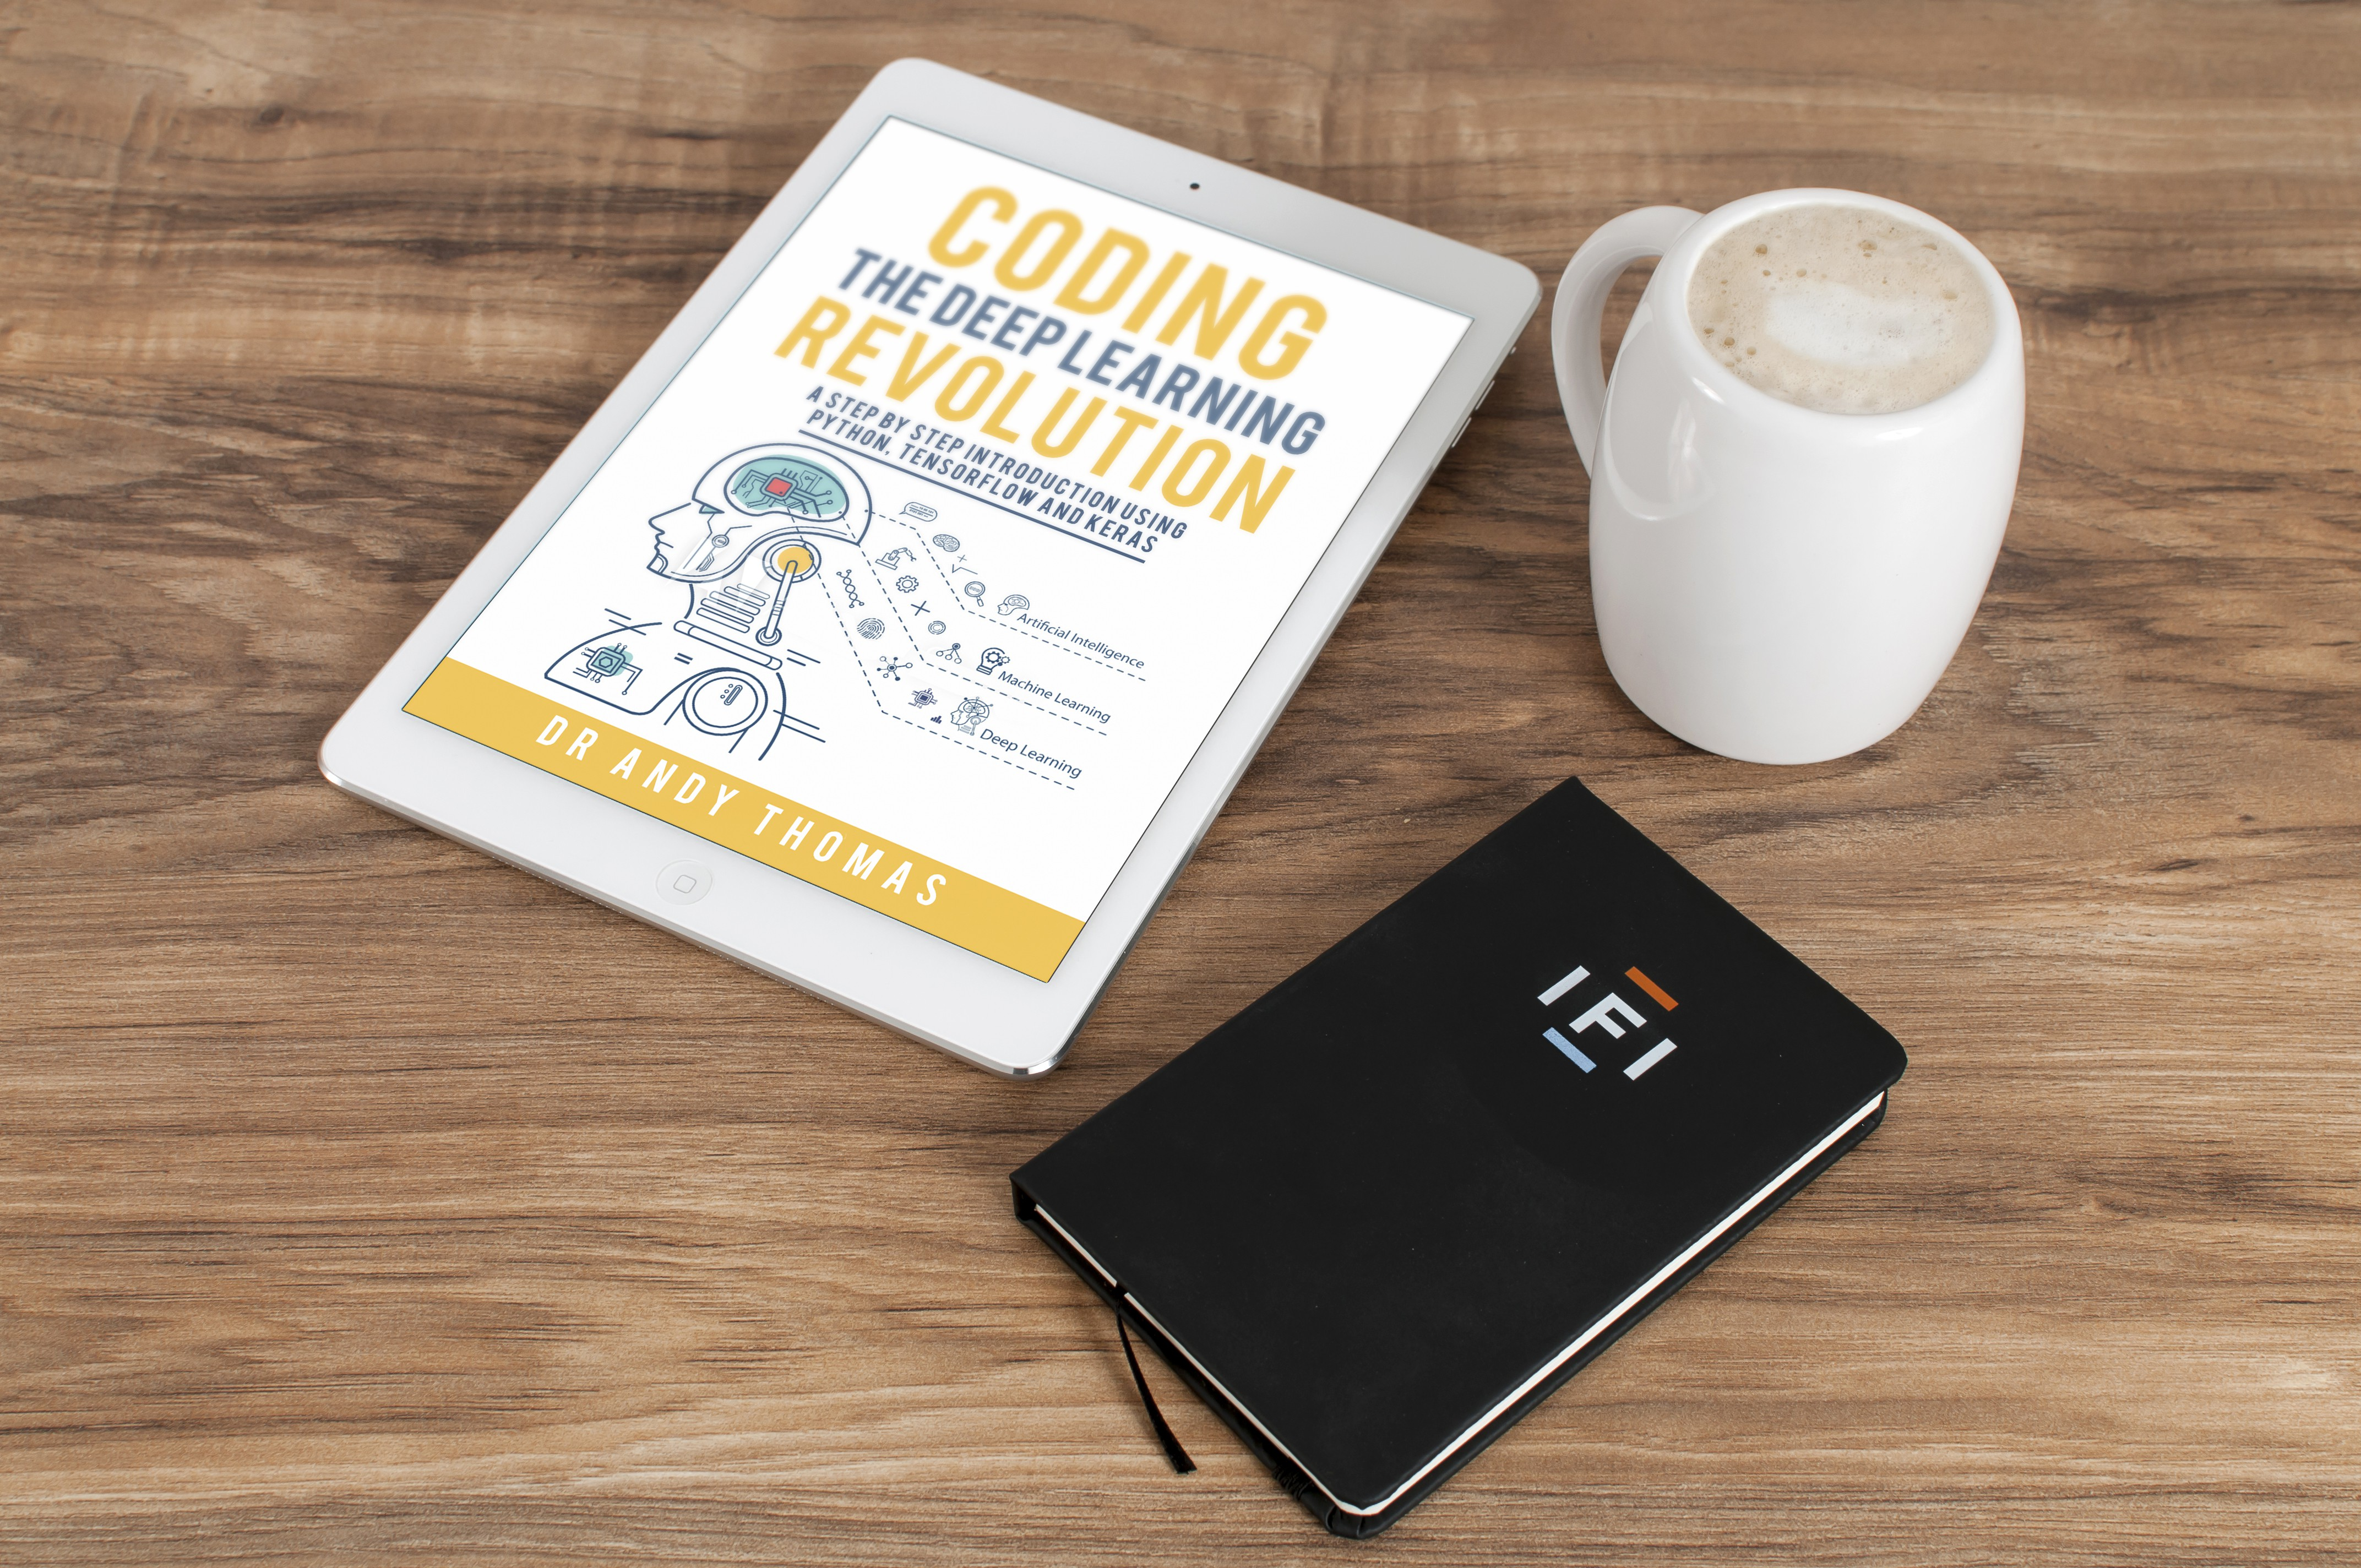 Design a tech-themed eBook cover for a machine learning topic